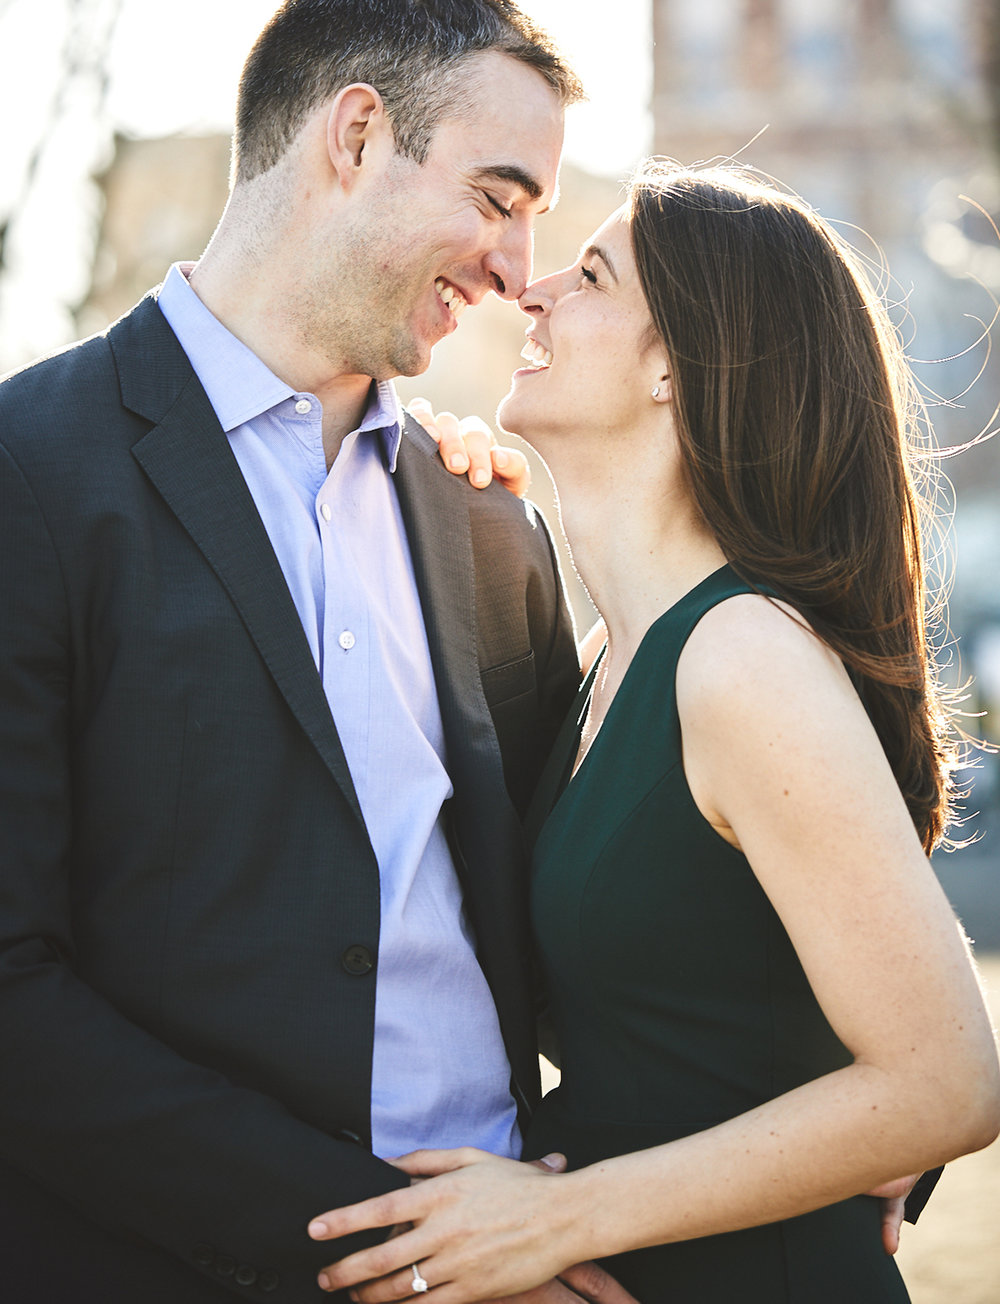 180422_StevensInstitureofTechnologyEngagementPhotography_HobokenEngagement Photography_By_BriJohnsonWeddings_0023.jpg